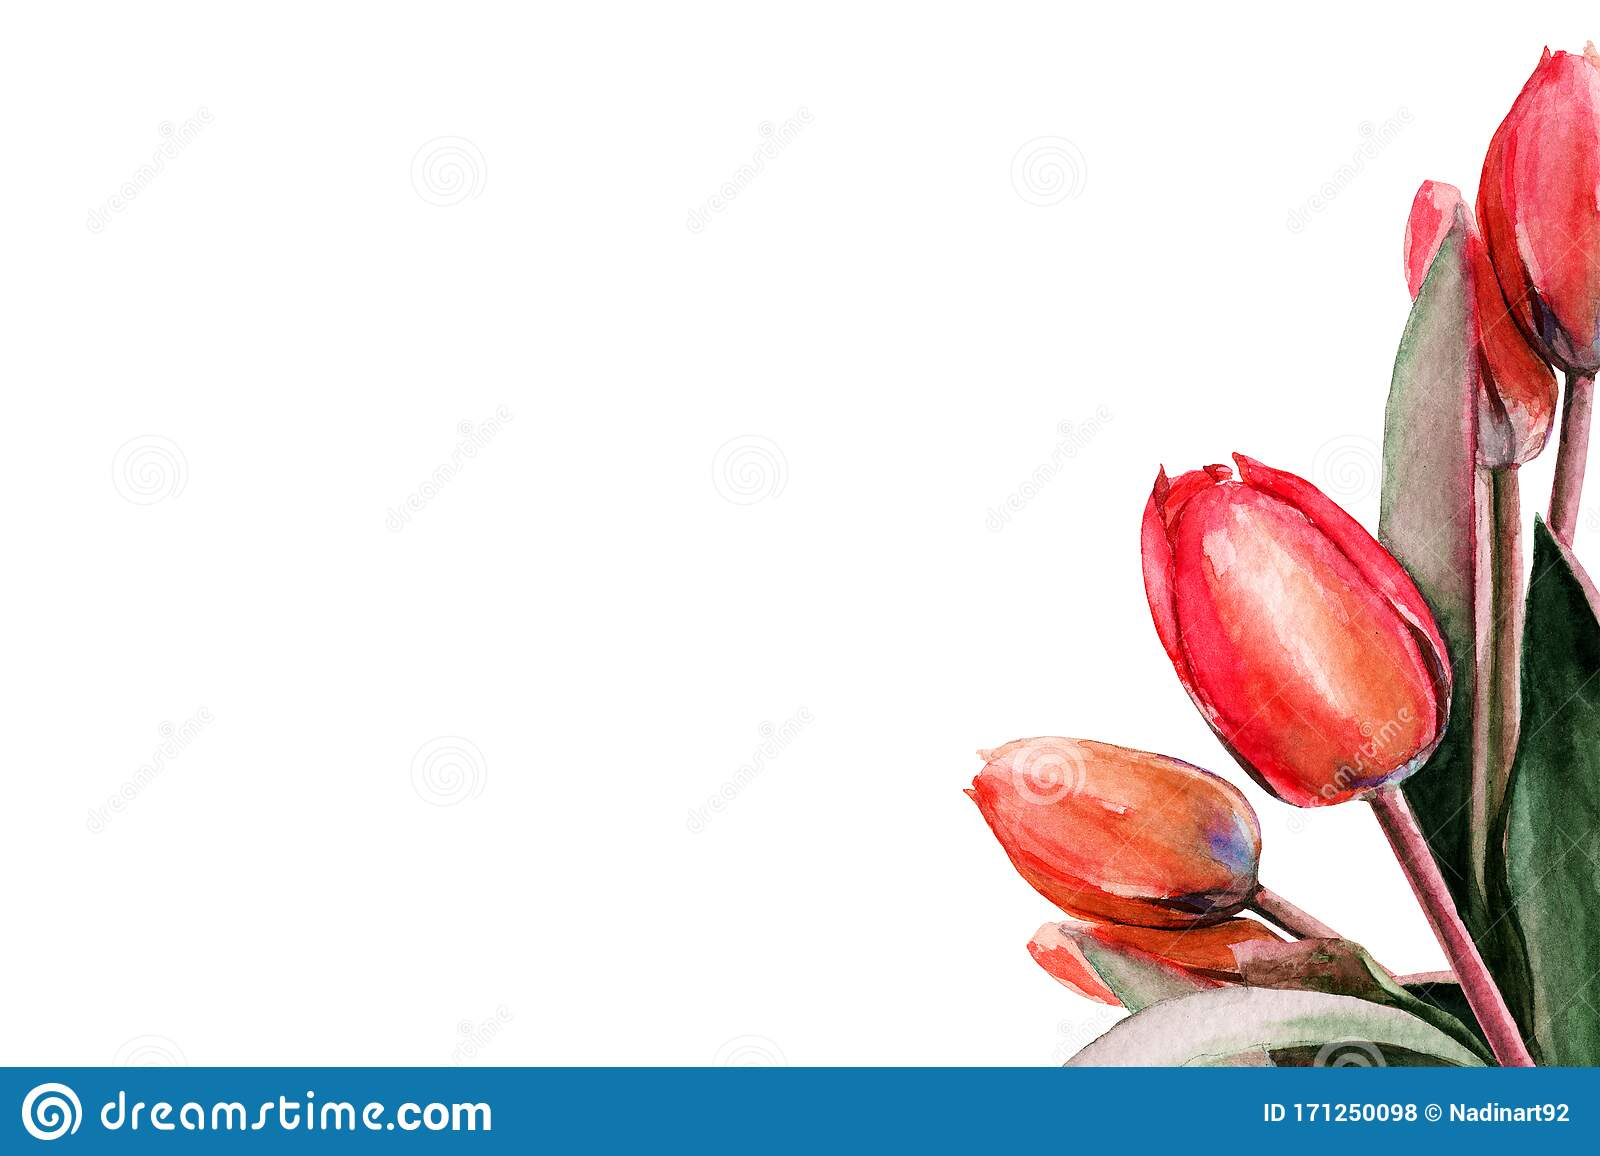 127 Art Clip Flower Stem Photos Free Royalty Free Stock Photos From Dreamstime